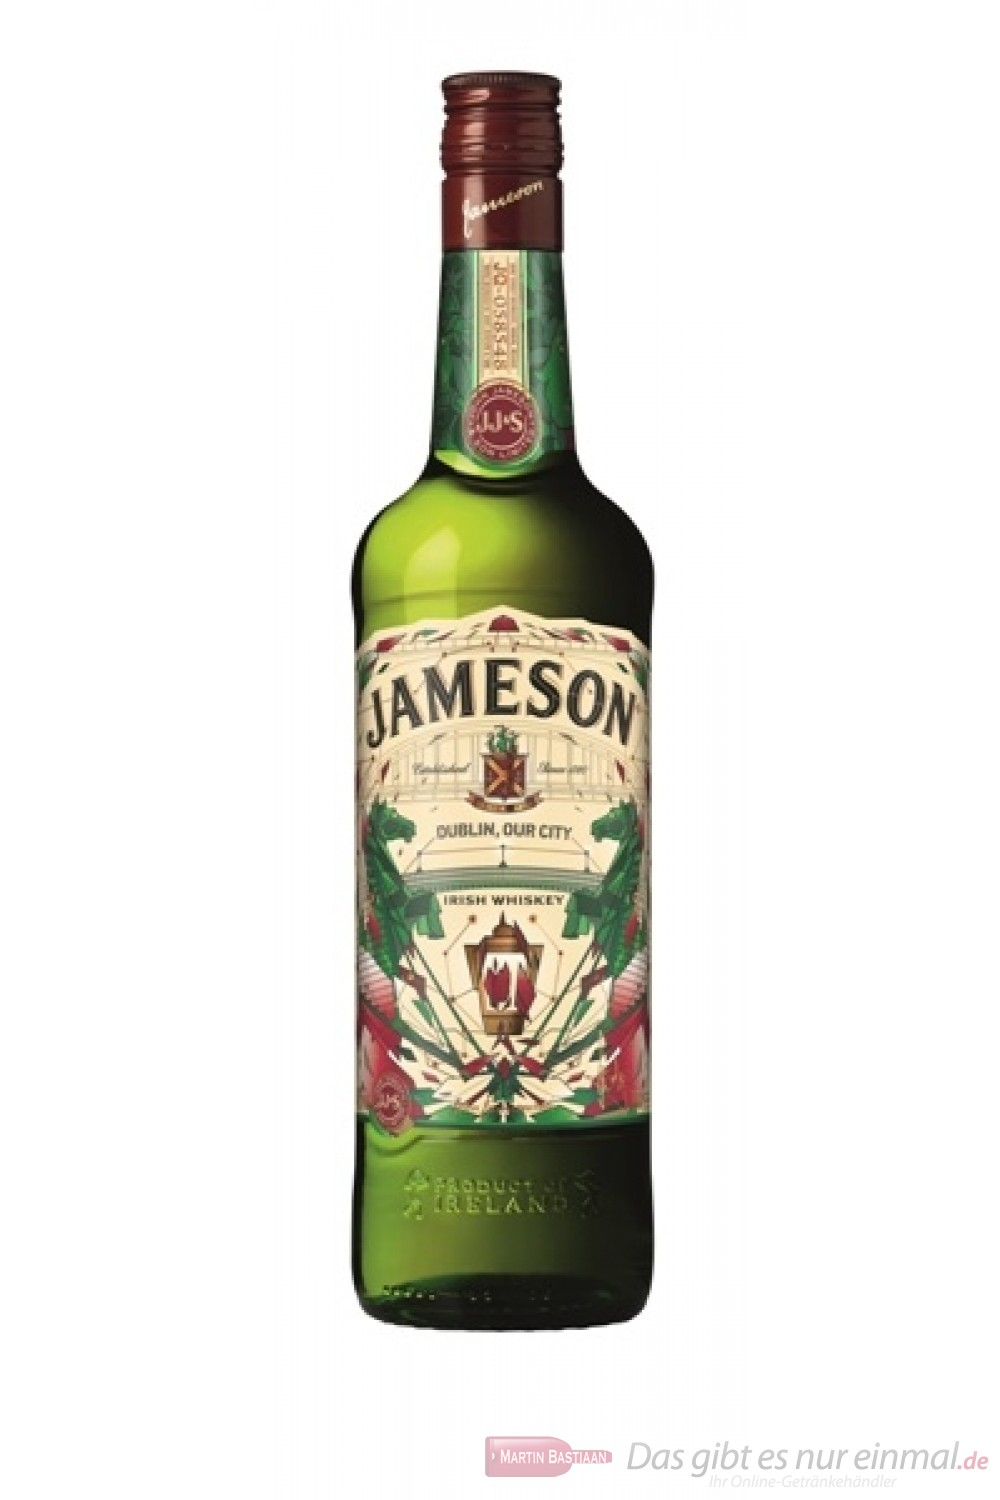 Jameson St. Patricks Day Sonderedition 2016